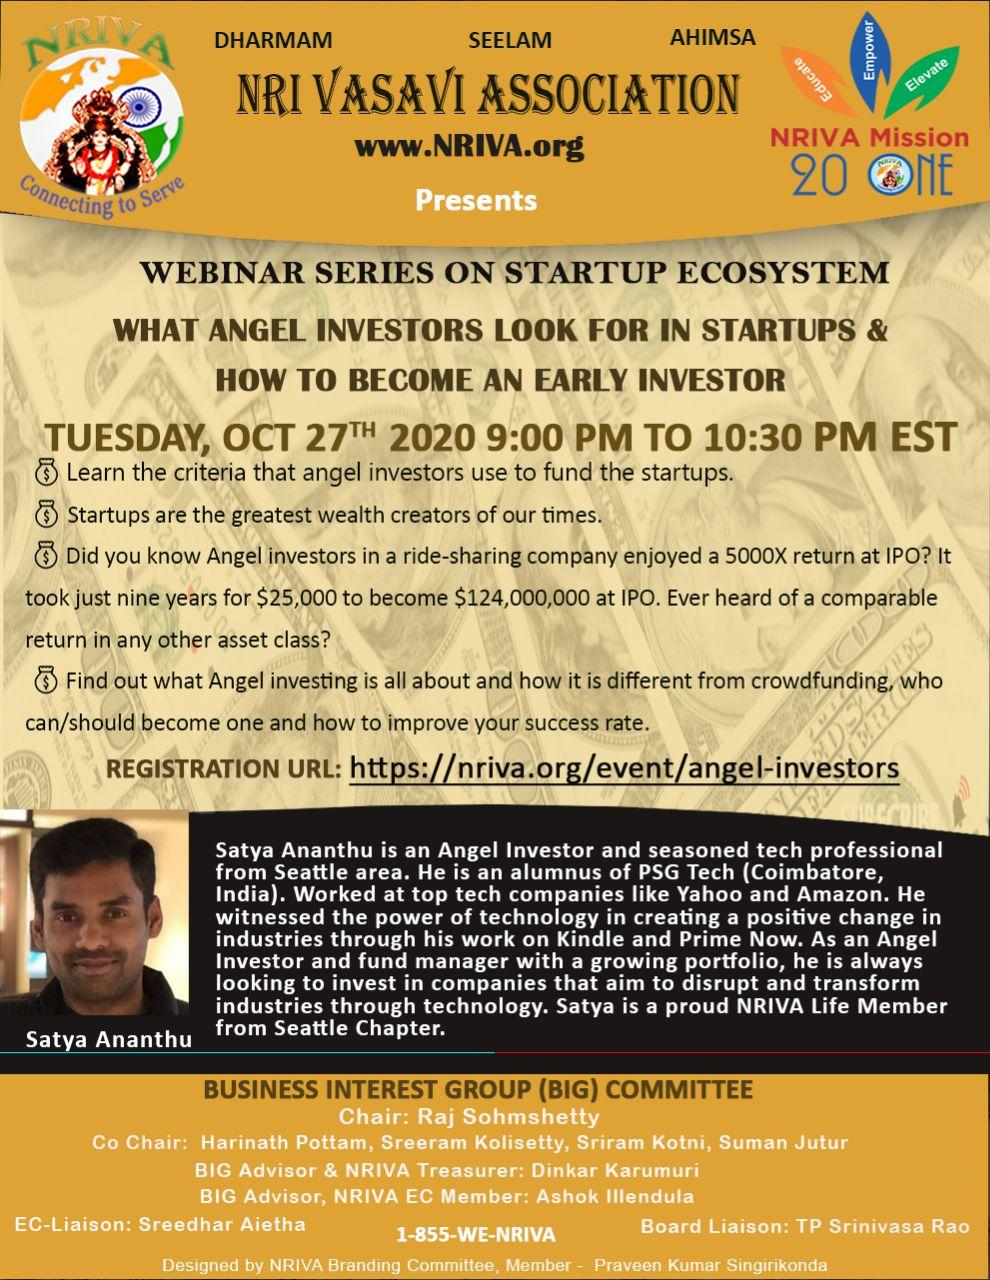 Angel Investors: How to become an Early Investor in Startups